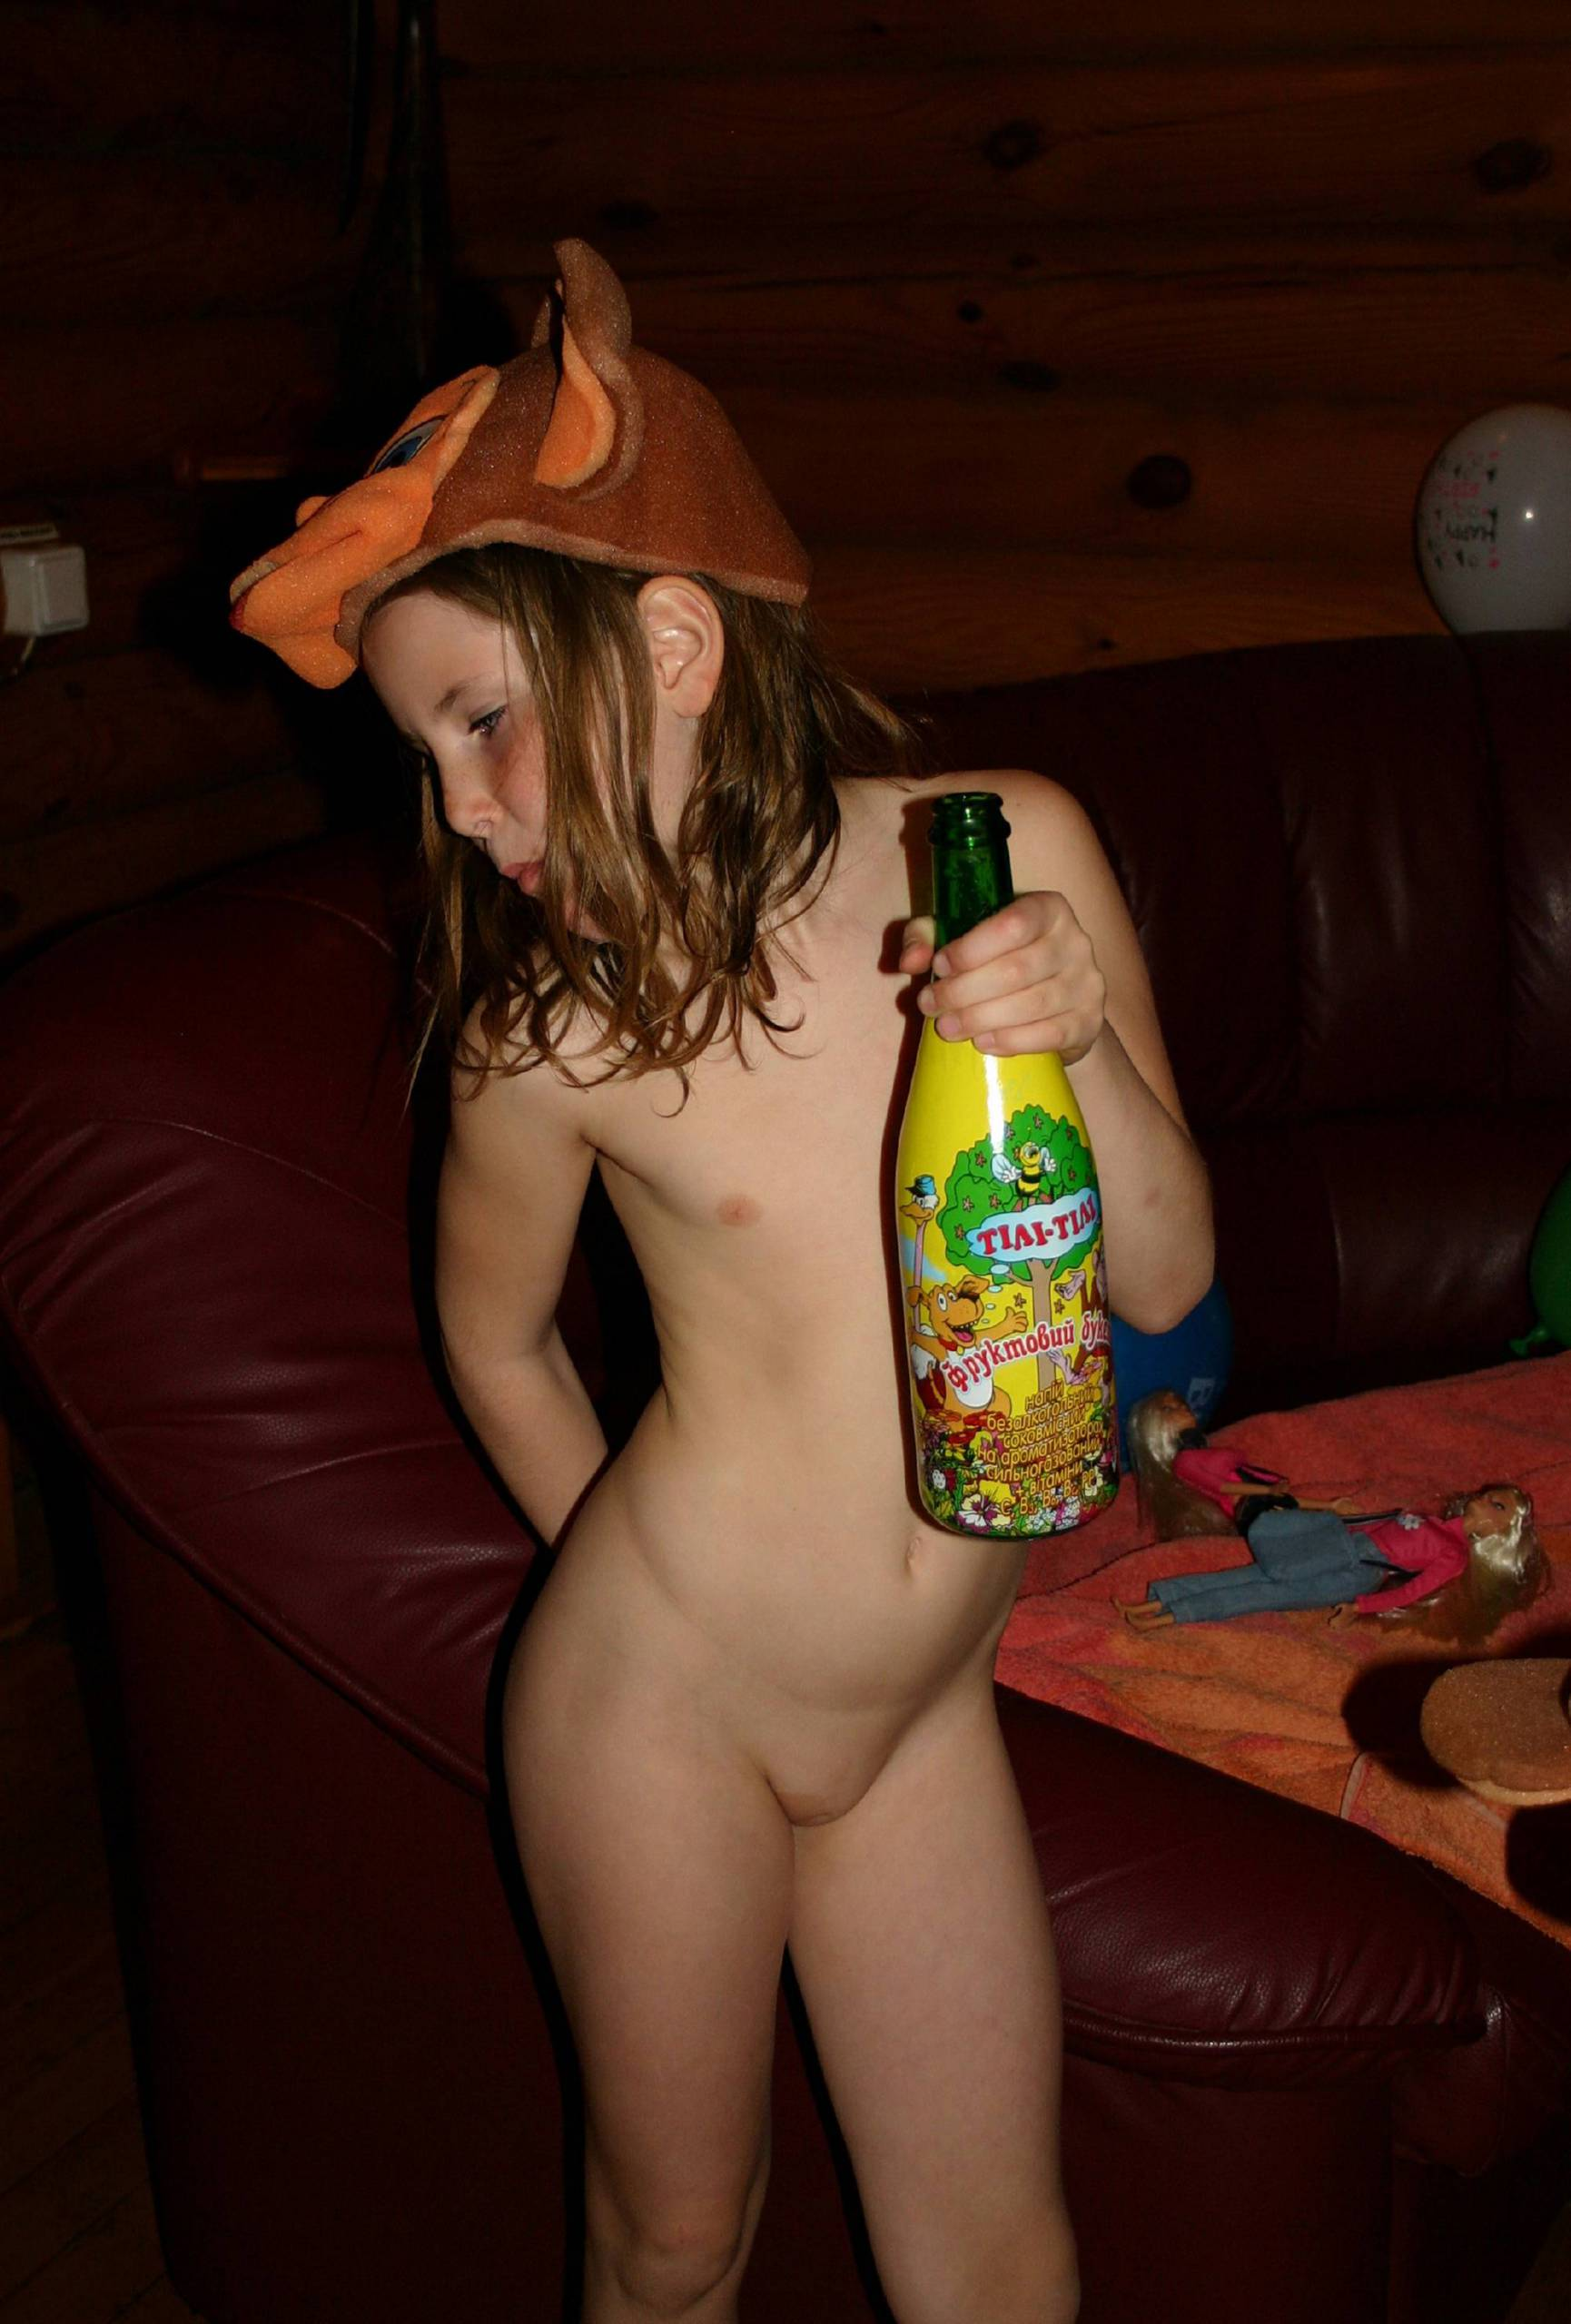 Nudist Pictures Nude Girl Birthday Party - 2